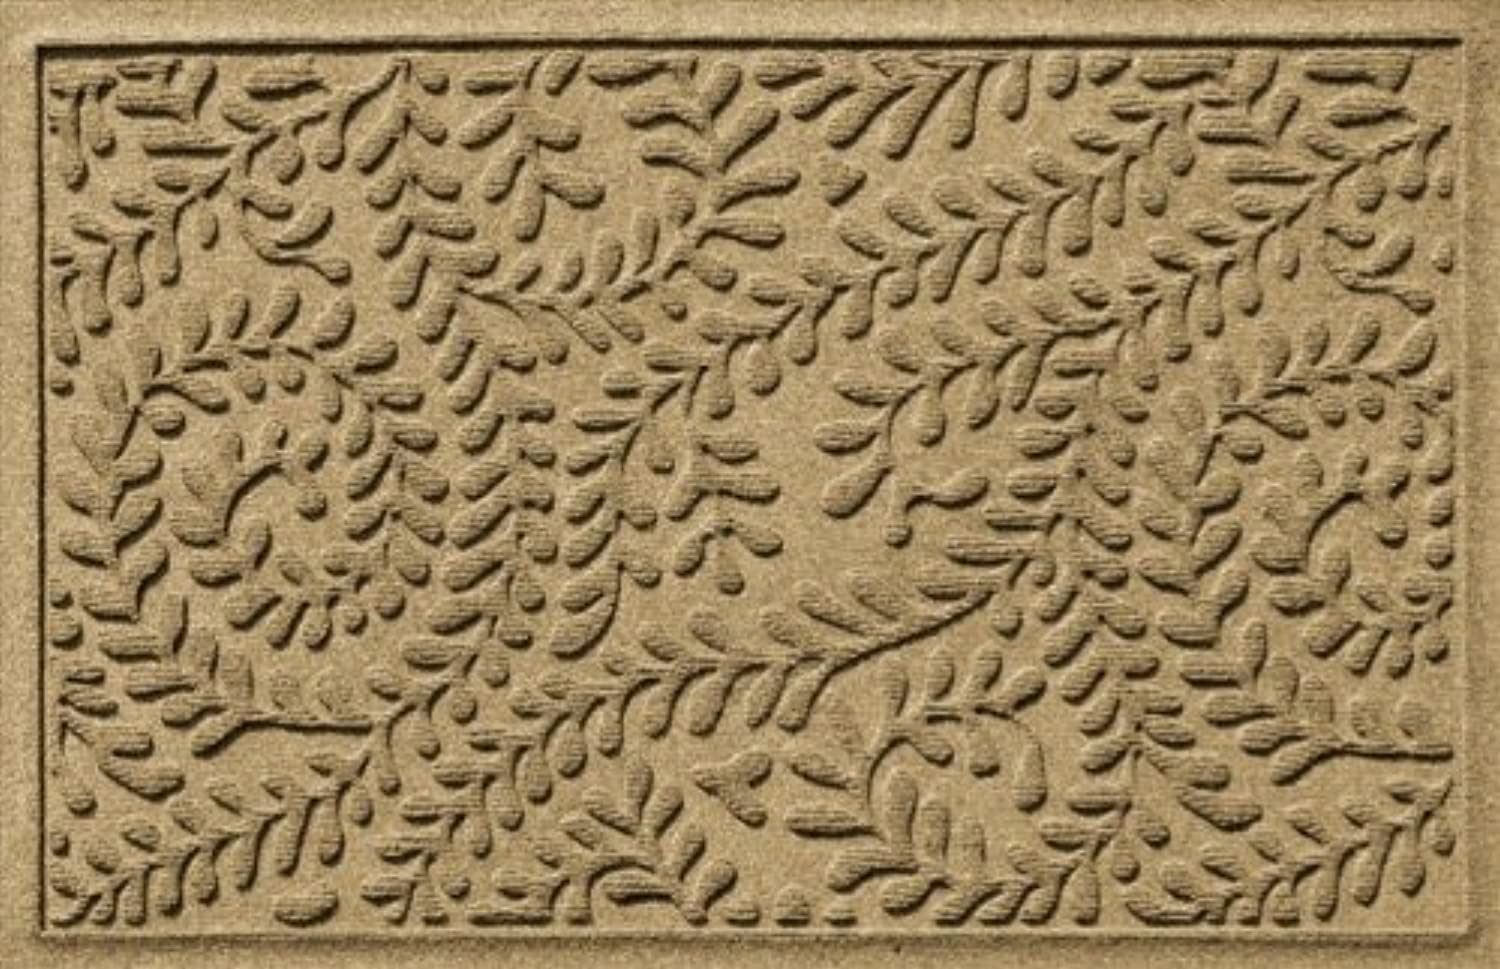 Bungalow Flooring 20378500023 Water Guard Boxwood Leaf Mat in Camel - 2 ft. x 3 ft.